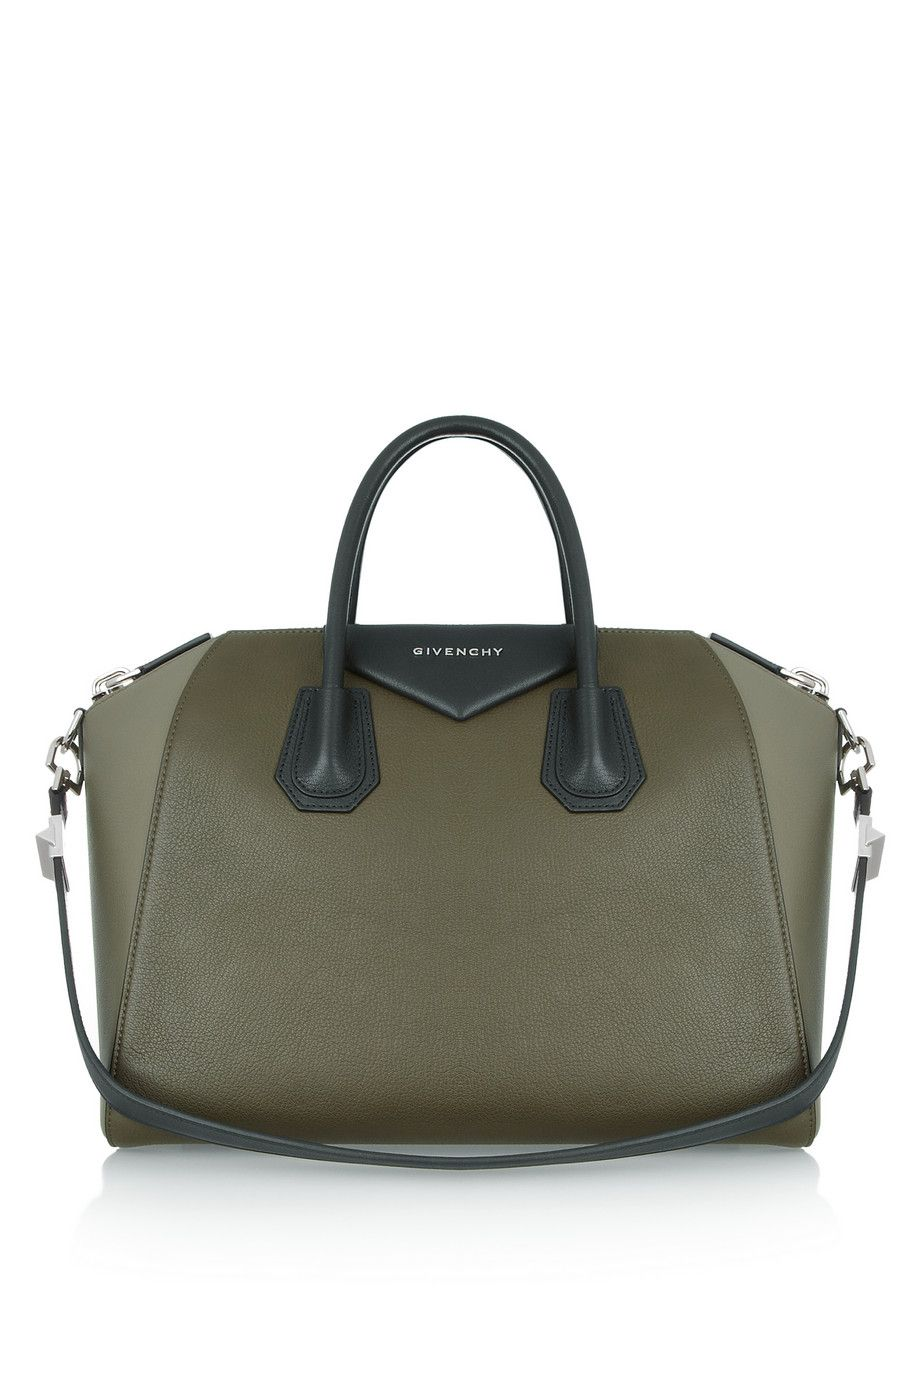 ab66dcf29a GIVENCHY Medium 'Antigona' bag in color-block Olive green leather Product  measures: Length 28cm / Width 17cm / Height 24cm / Handle Drop 16cm /  Shoulder ...